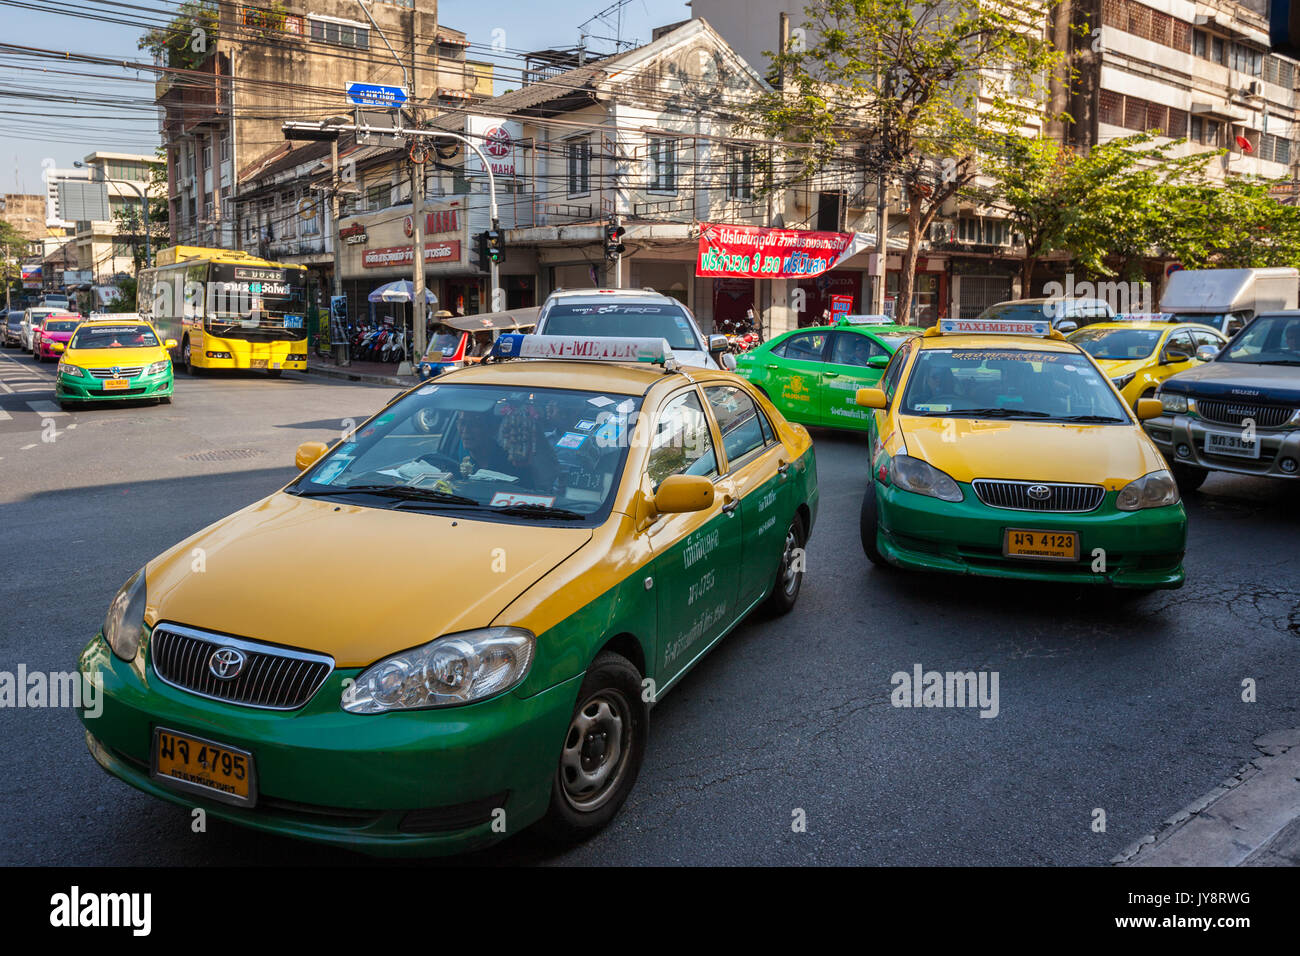 Traditional thai green yellow metered taxis around Khao San Road, Bangkok, Thailand - Stock Image